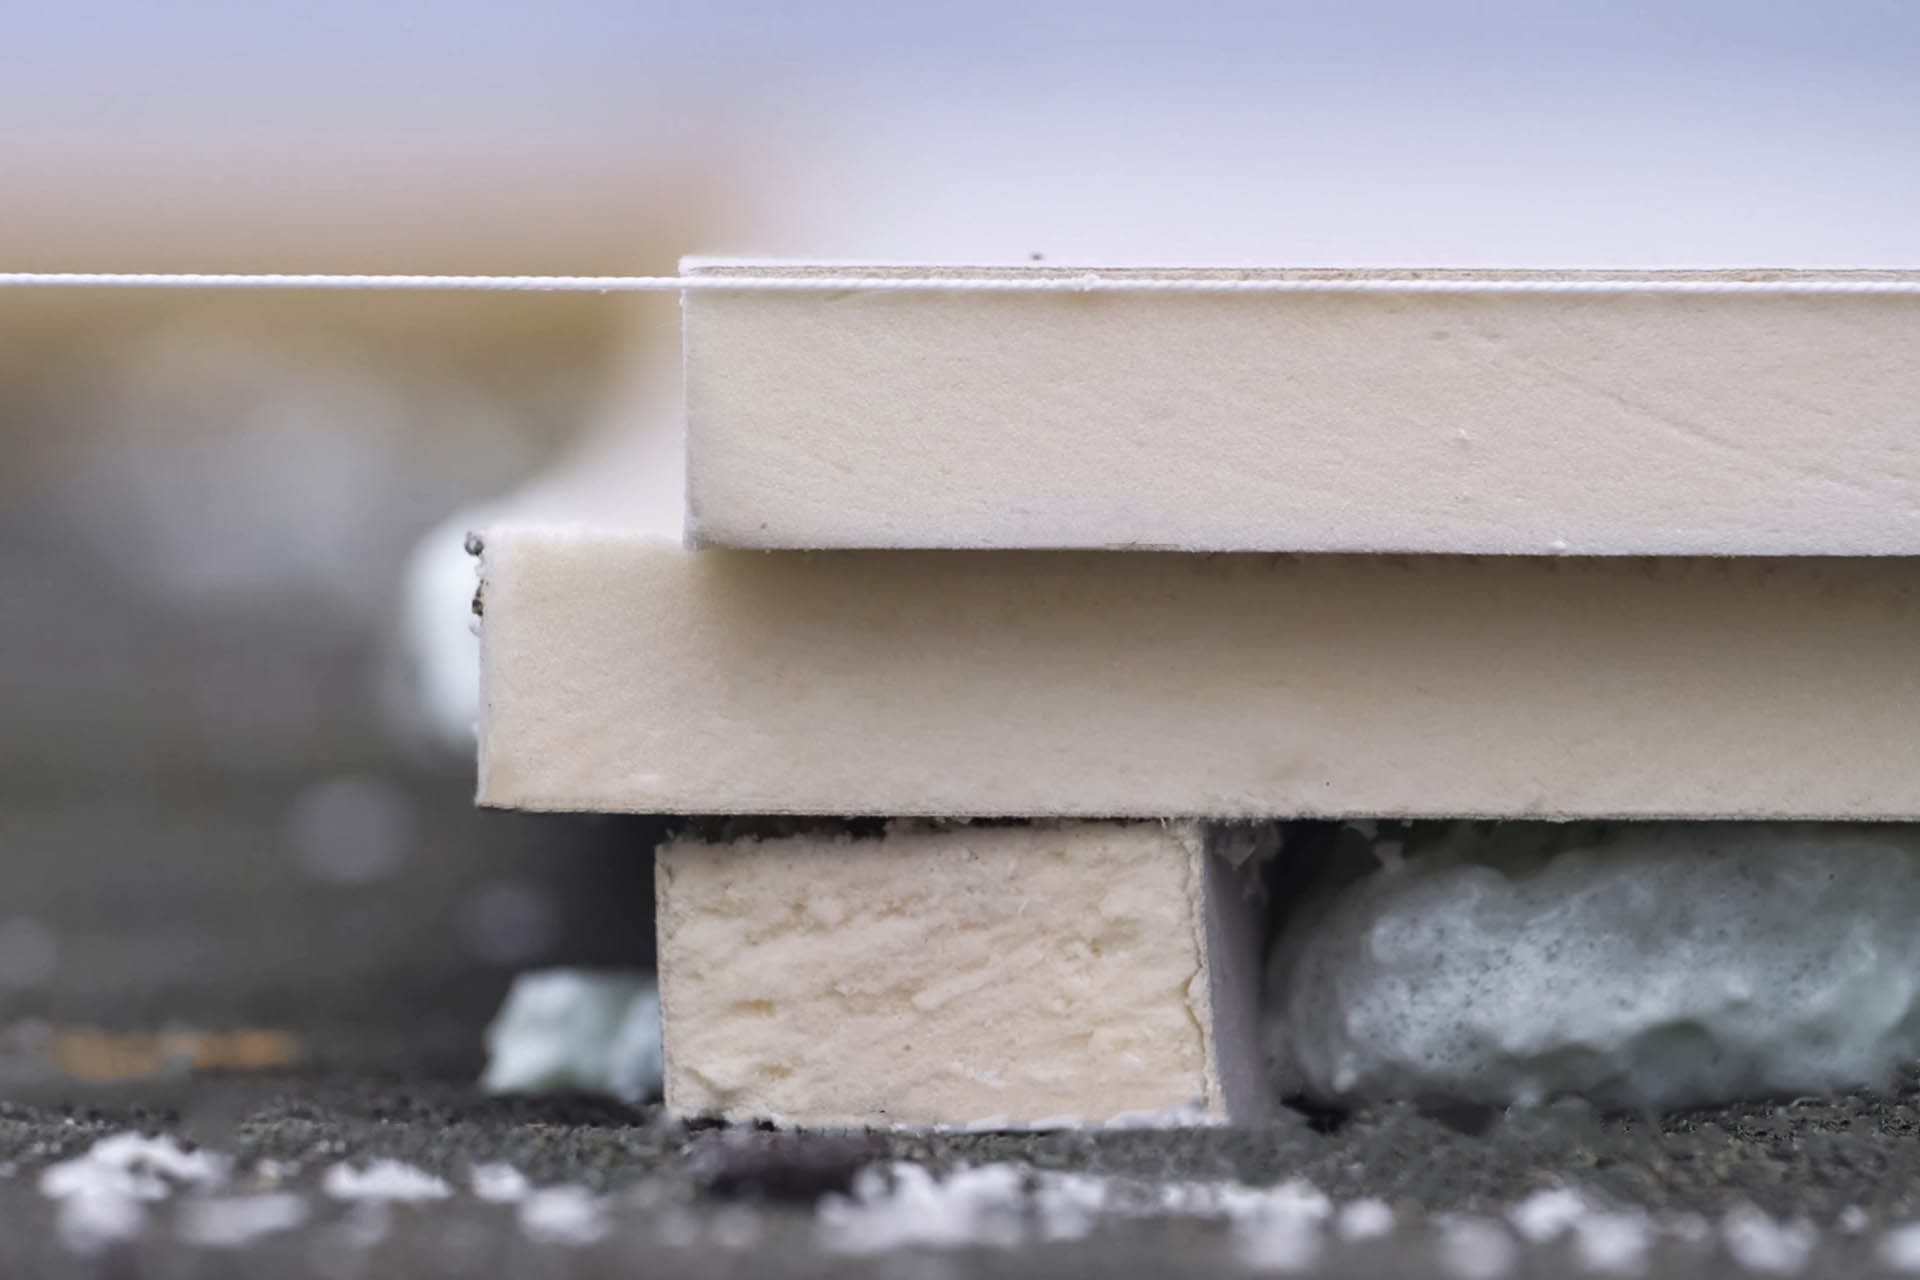 Roofing thermal insulation board, sheets of foam boards - building materials